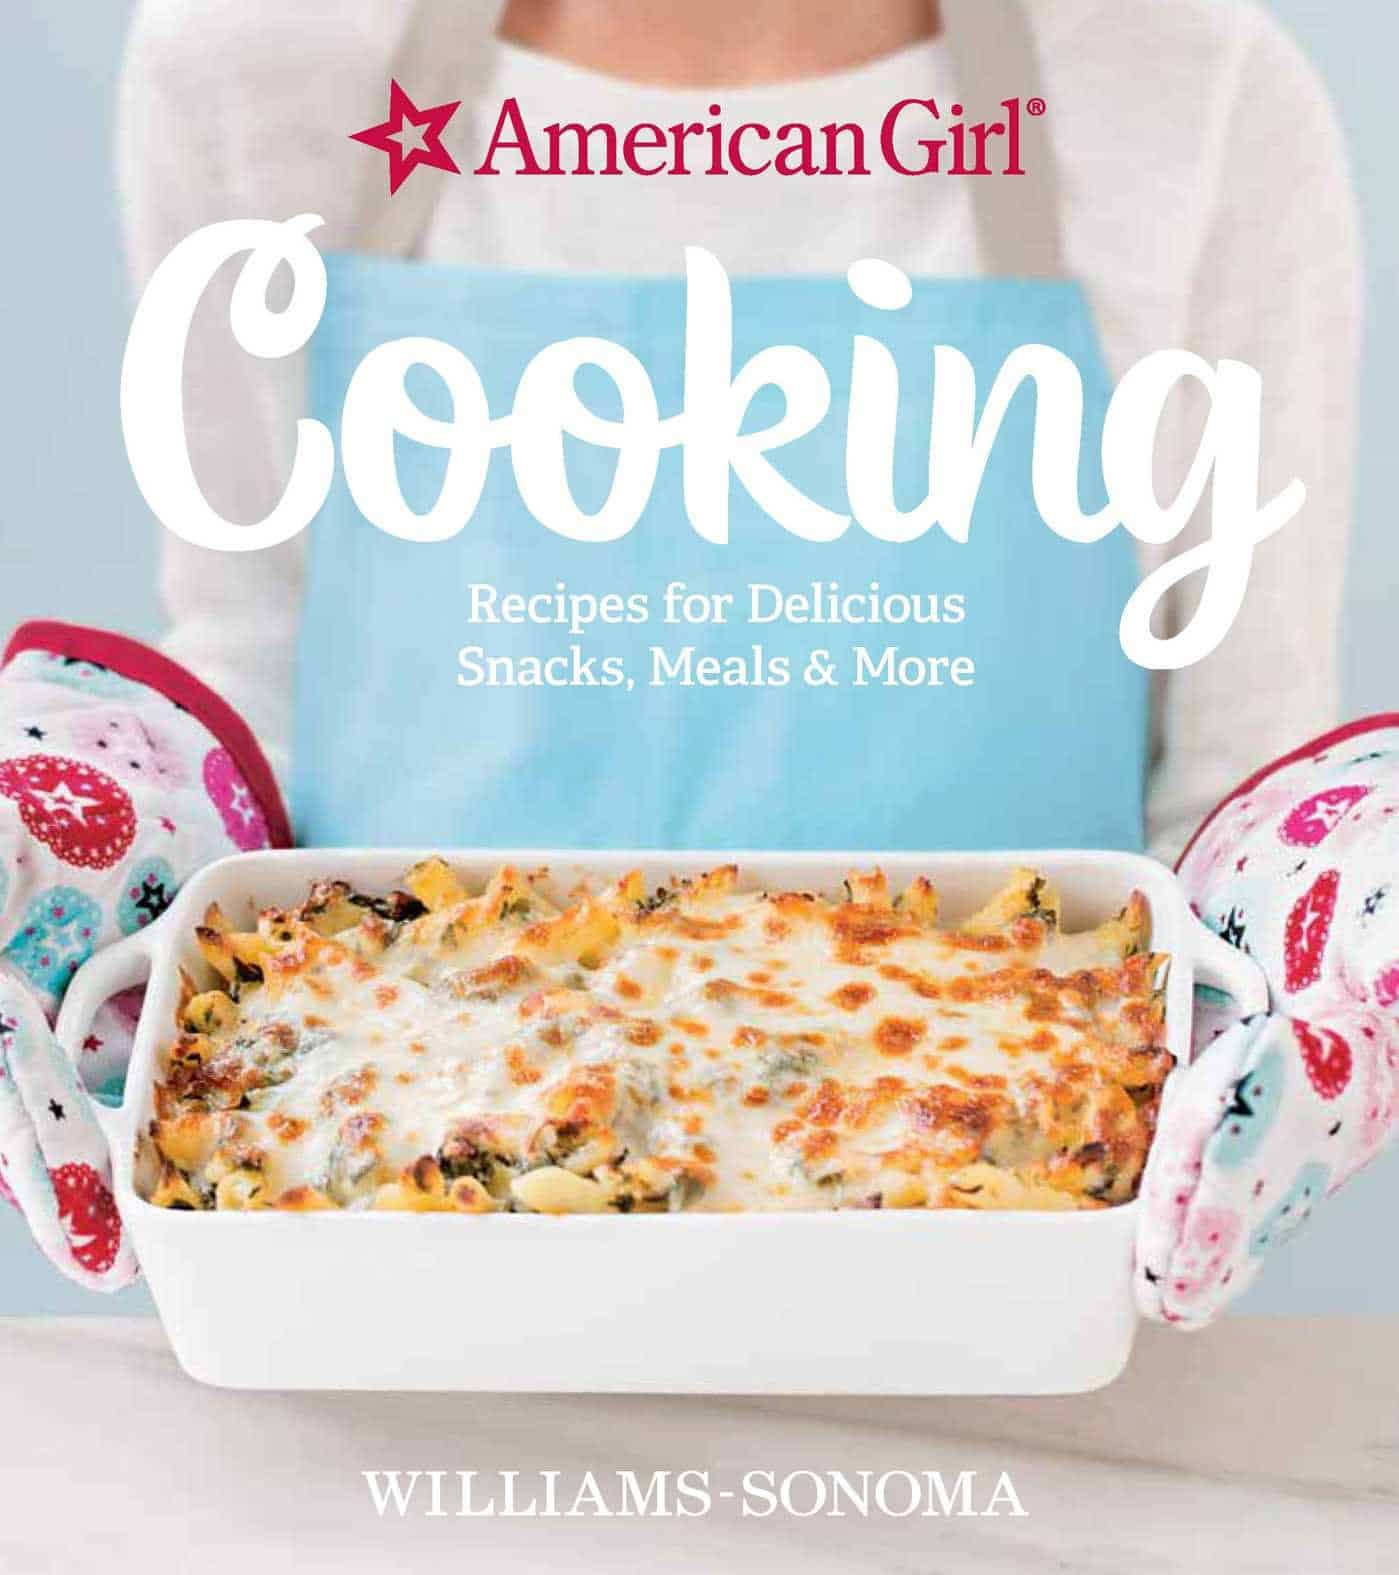 American Girl Cooking - gifts for teen girls